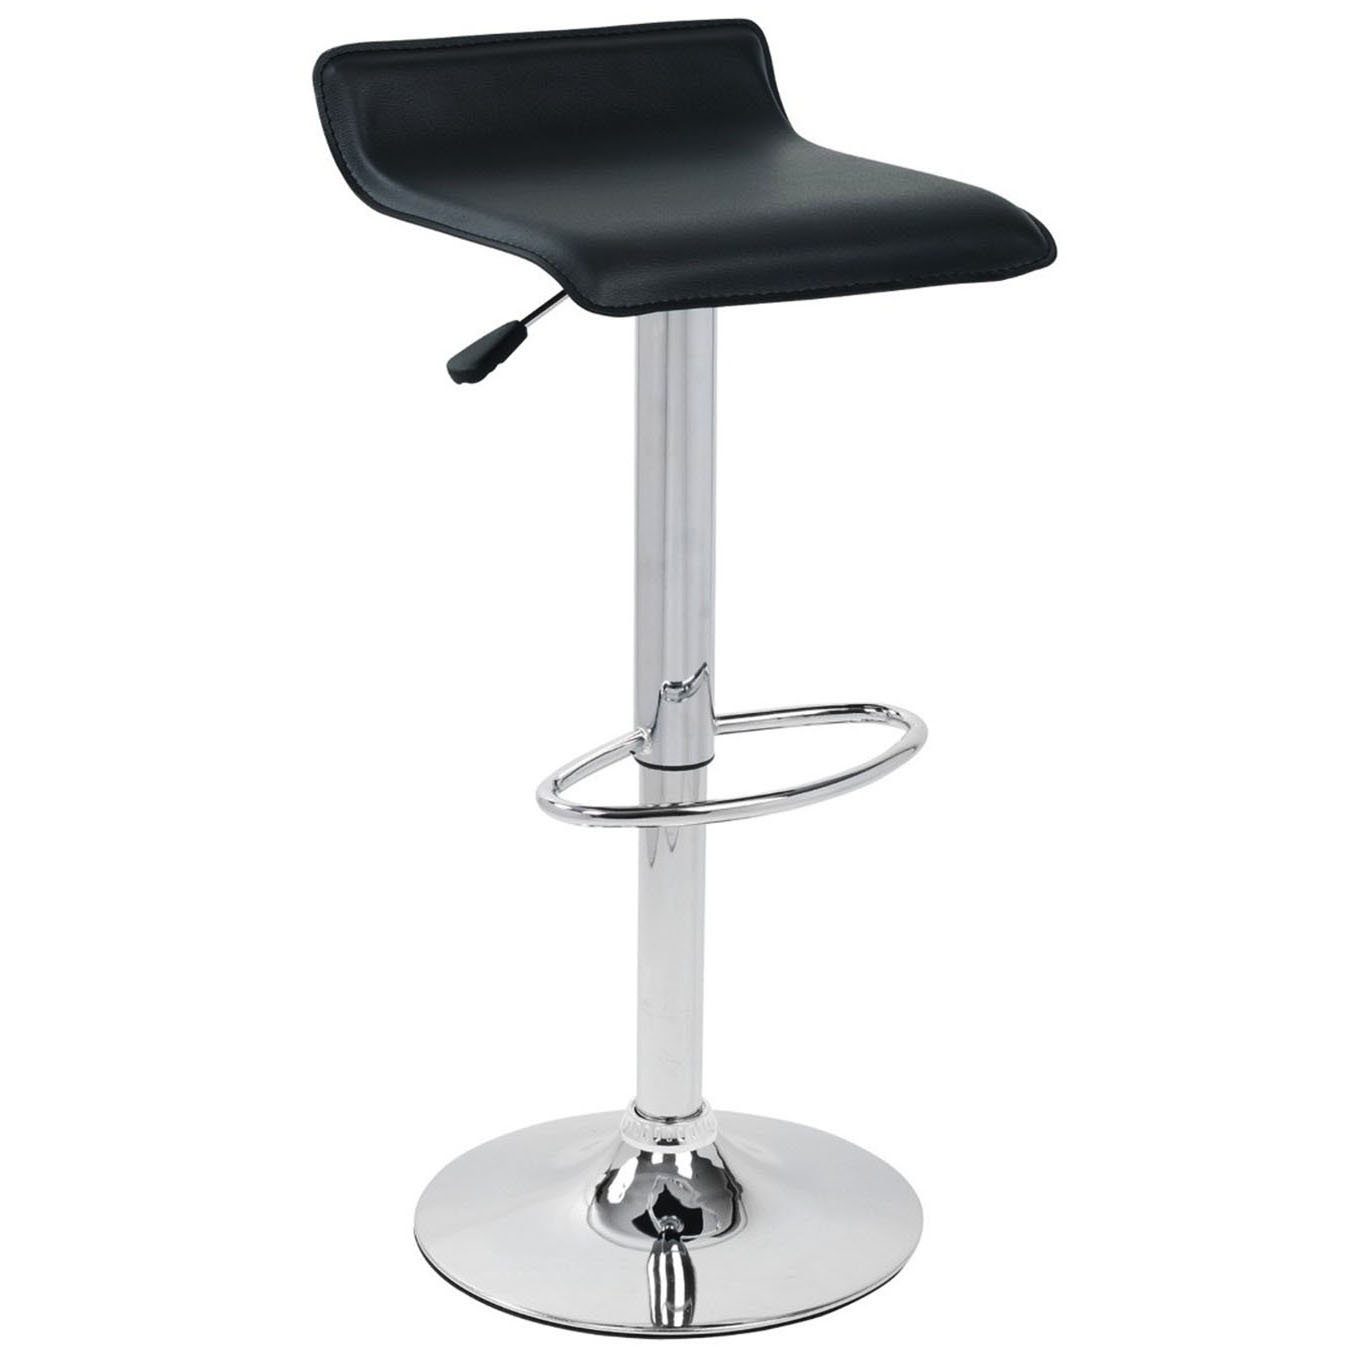 Baceno Bar Stool - Black